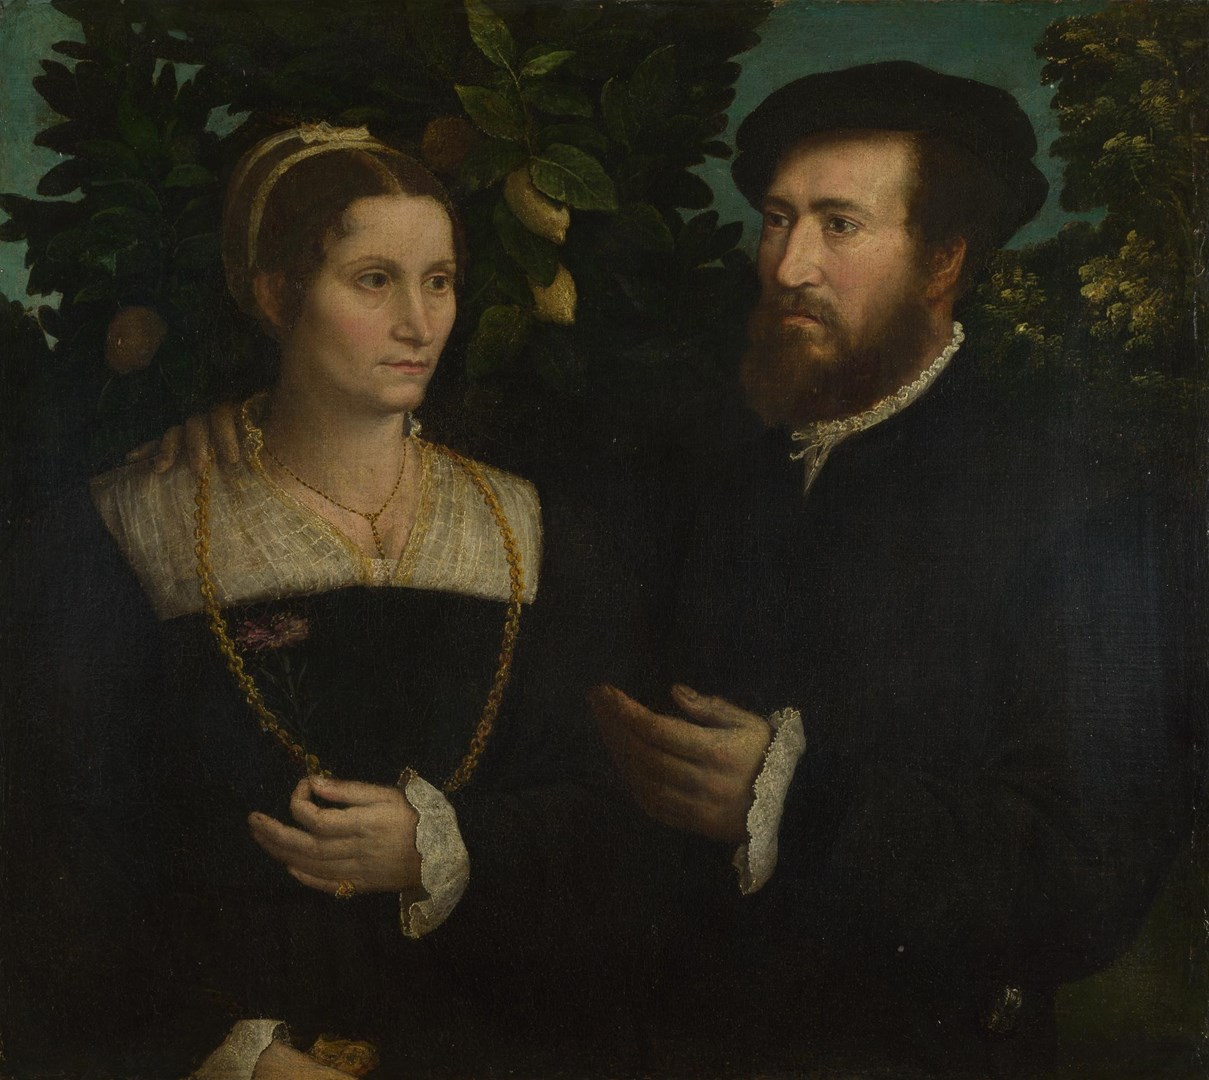 A Man and his Wife by Italian